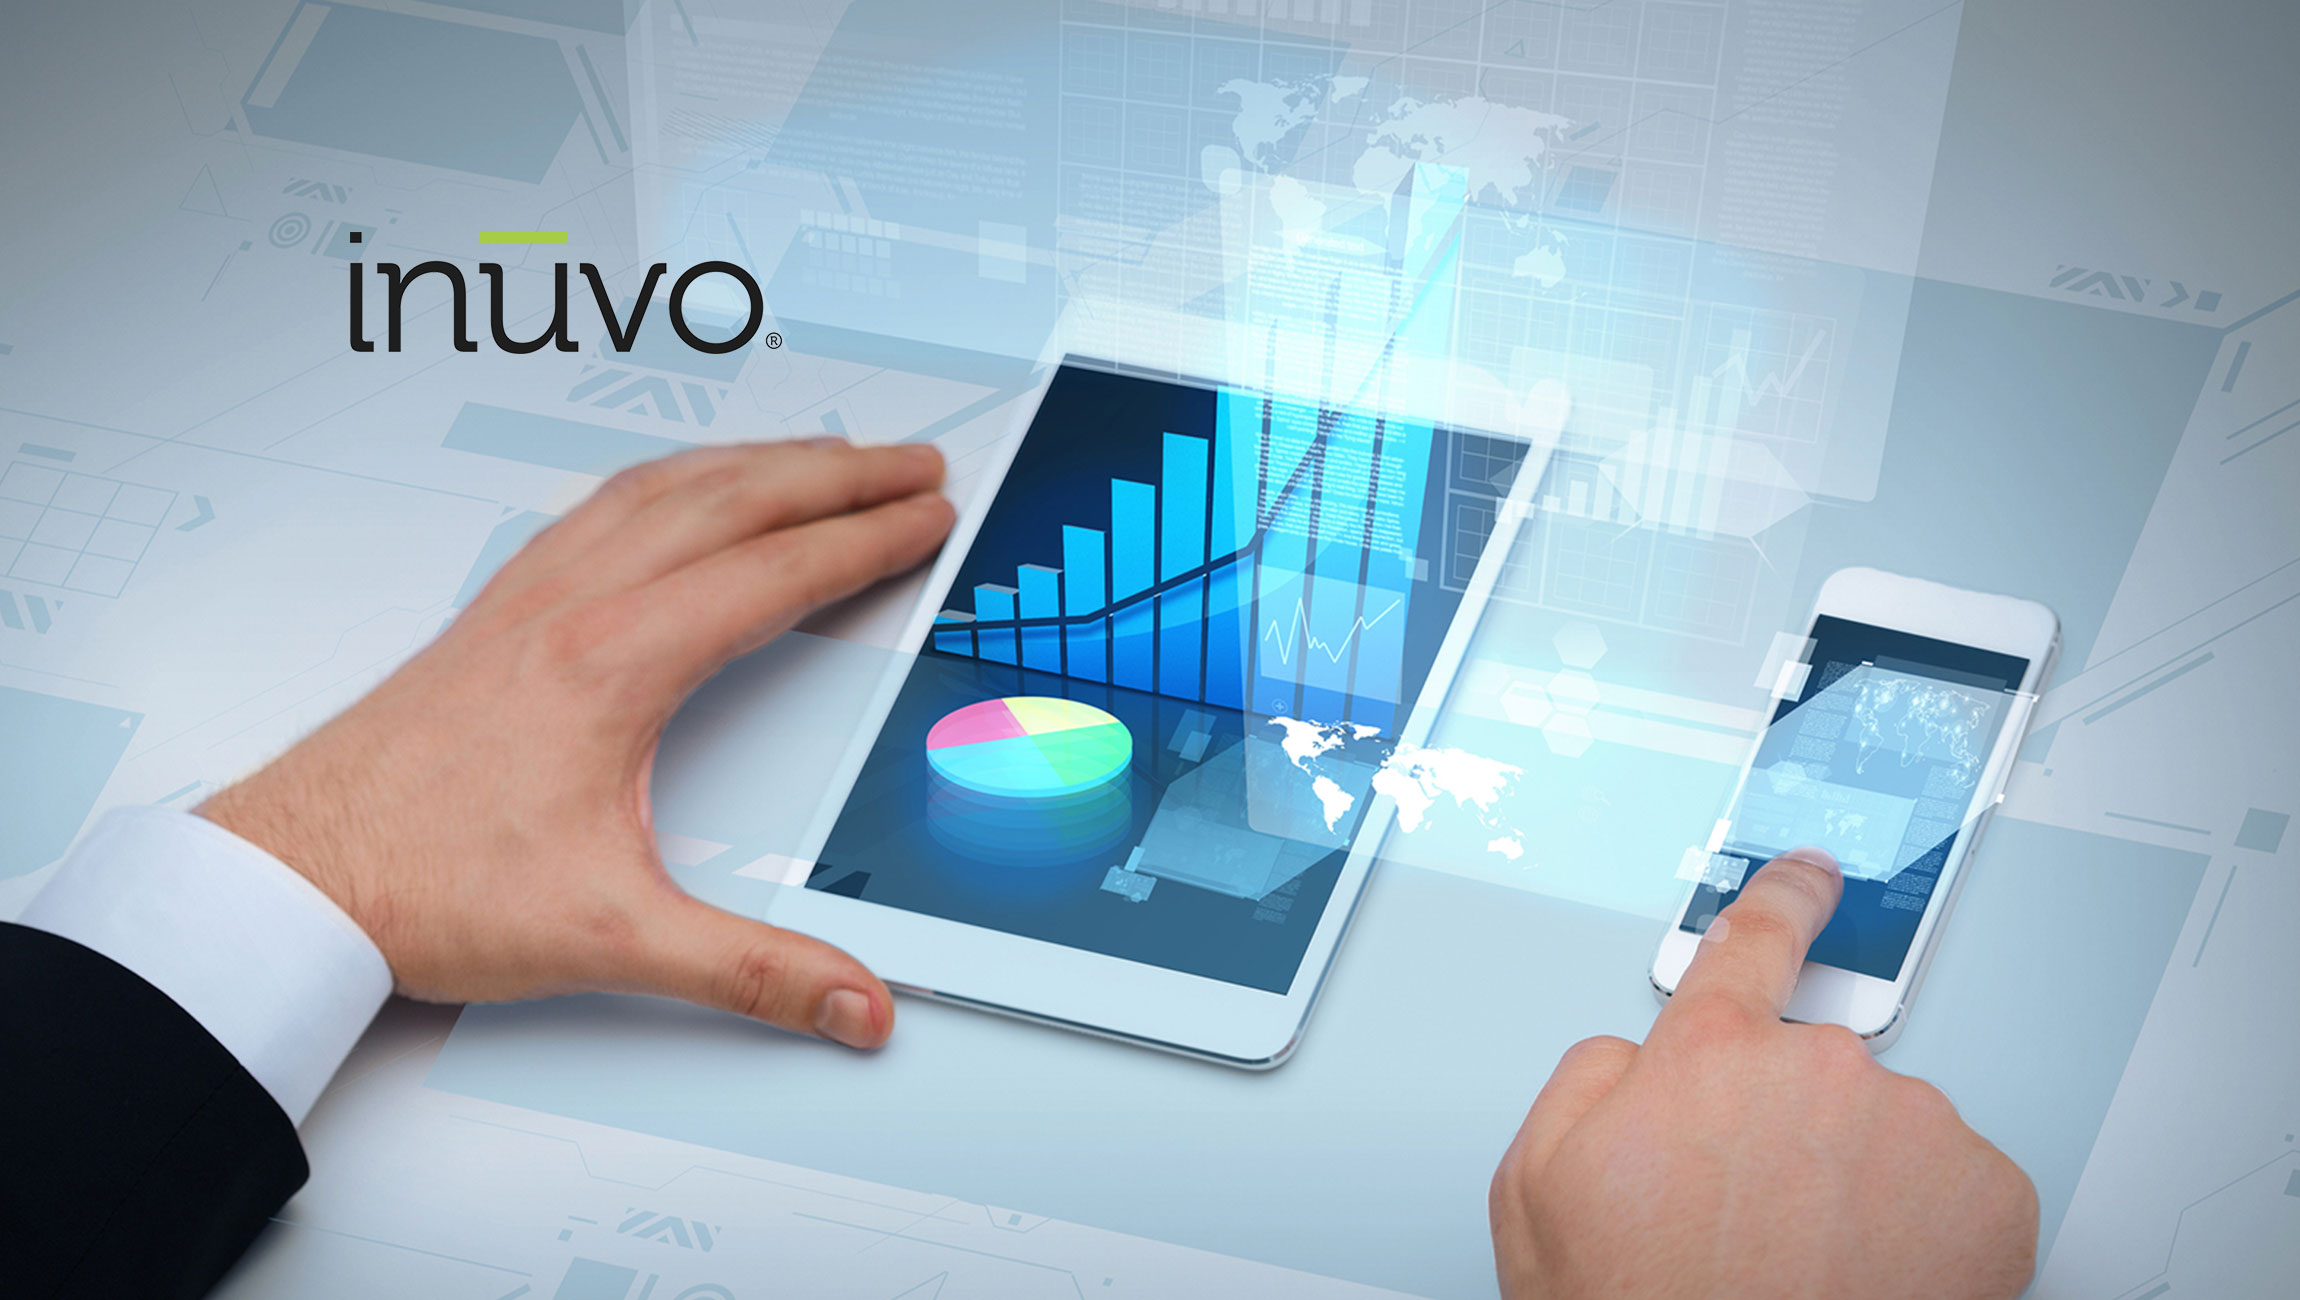 Inuvo (INUV) Stock Enters the Bearish Trend: How to Trade Now?